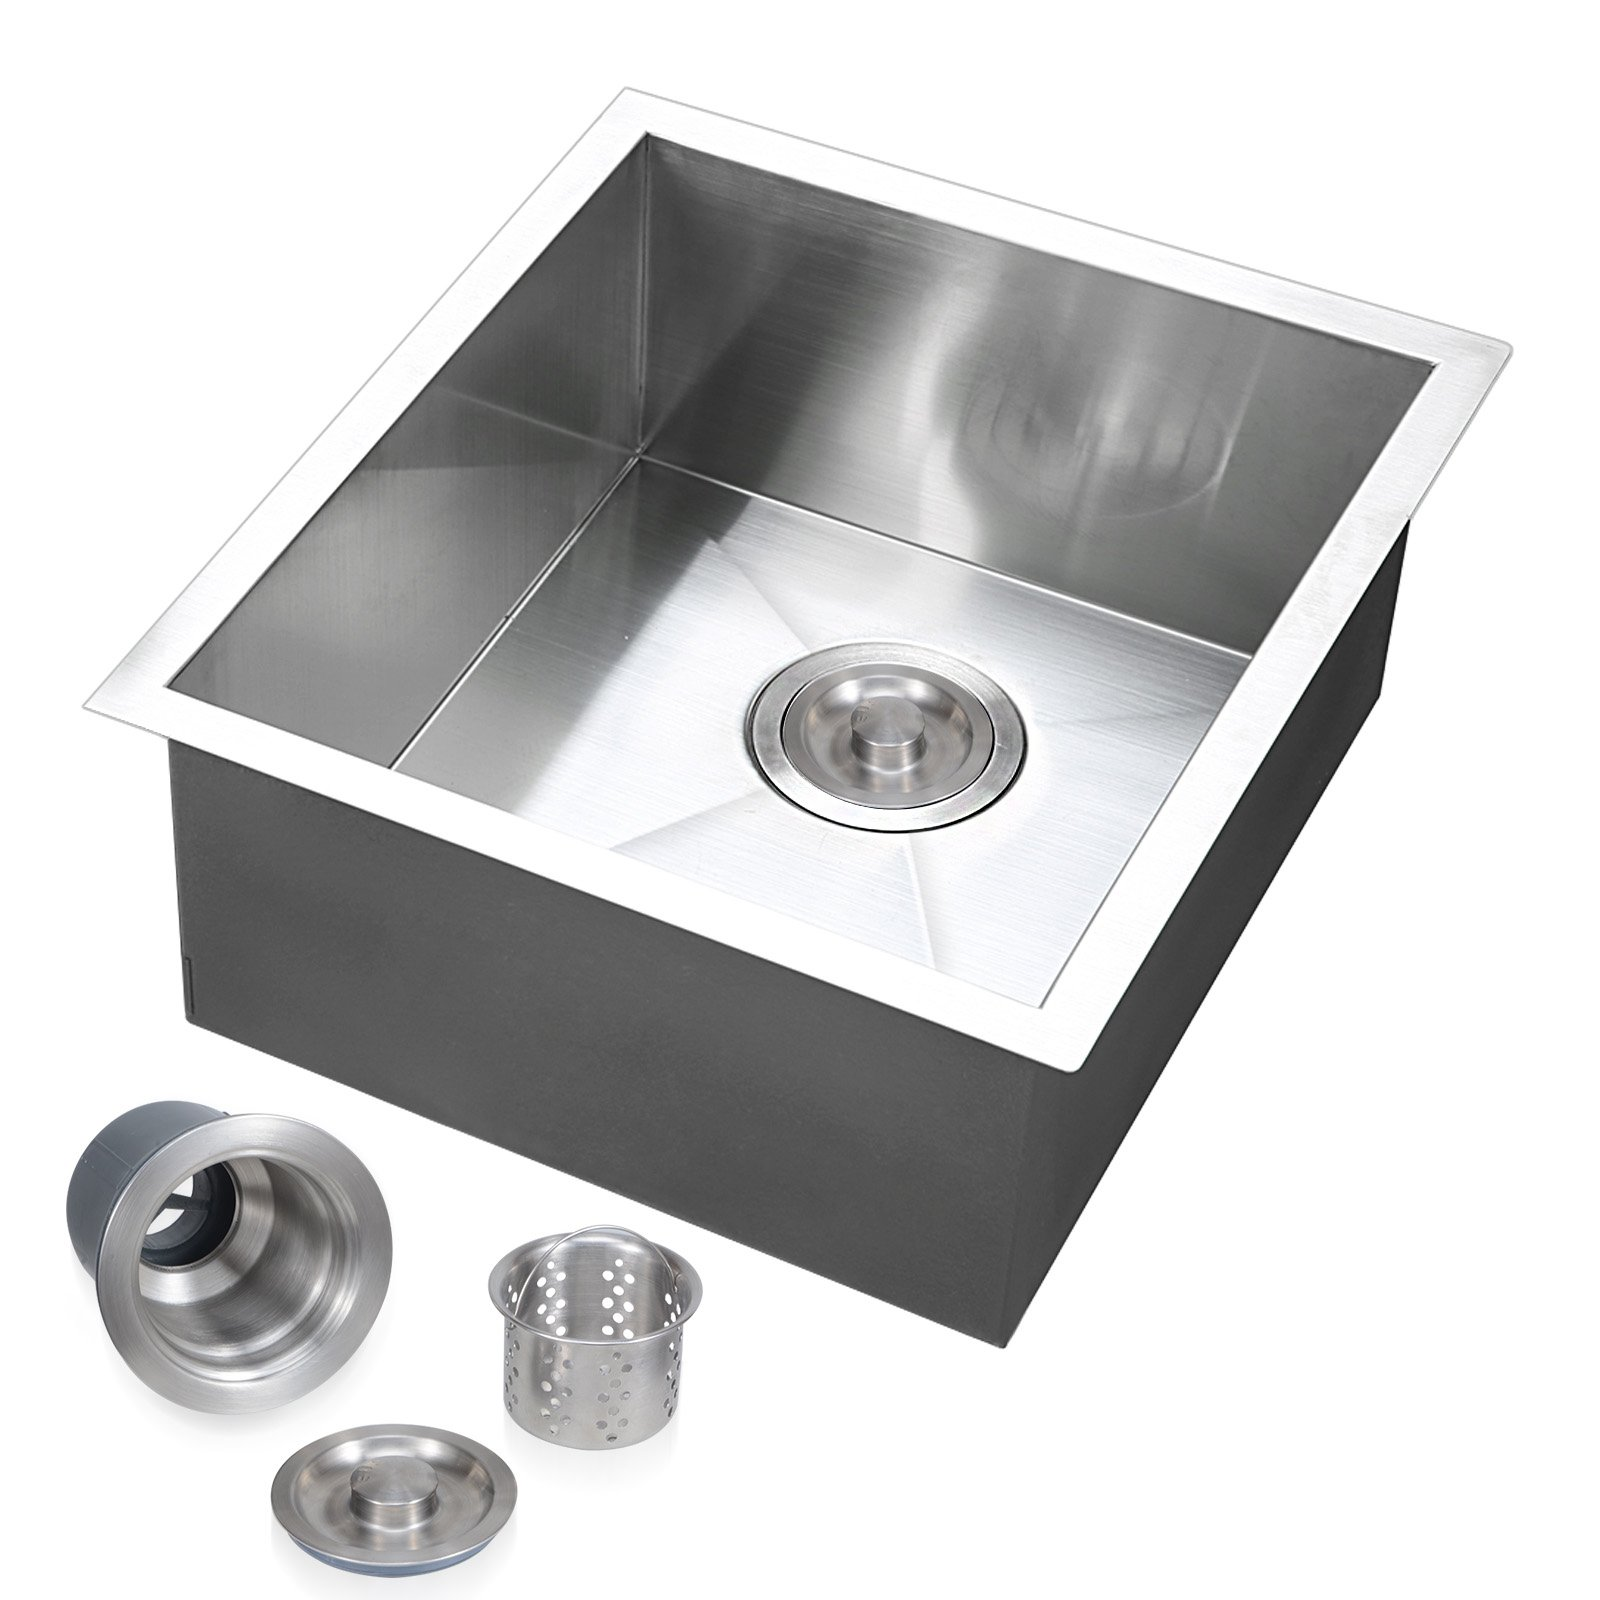 Voilamart 17'' x 17'' Single Bowl Handmade Stainless Steel Kitchen Sink 19 Gauge - Undermount Topmount Flushmount - Laundry Utility Sink